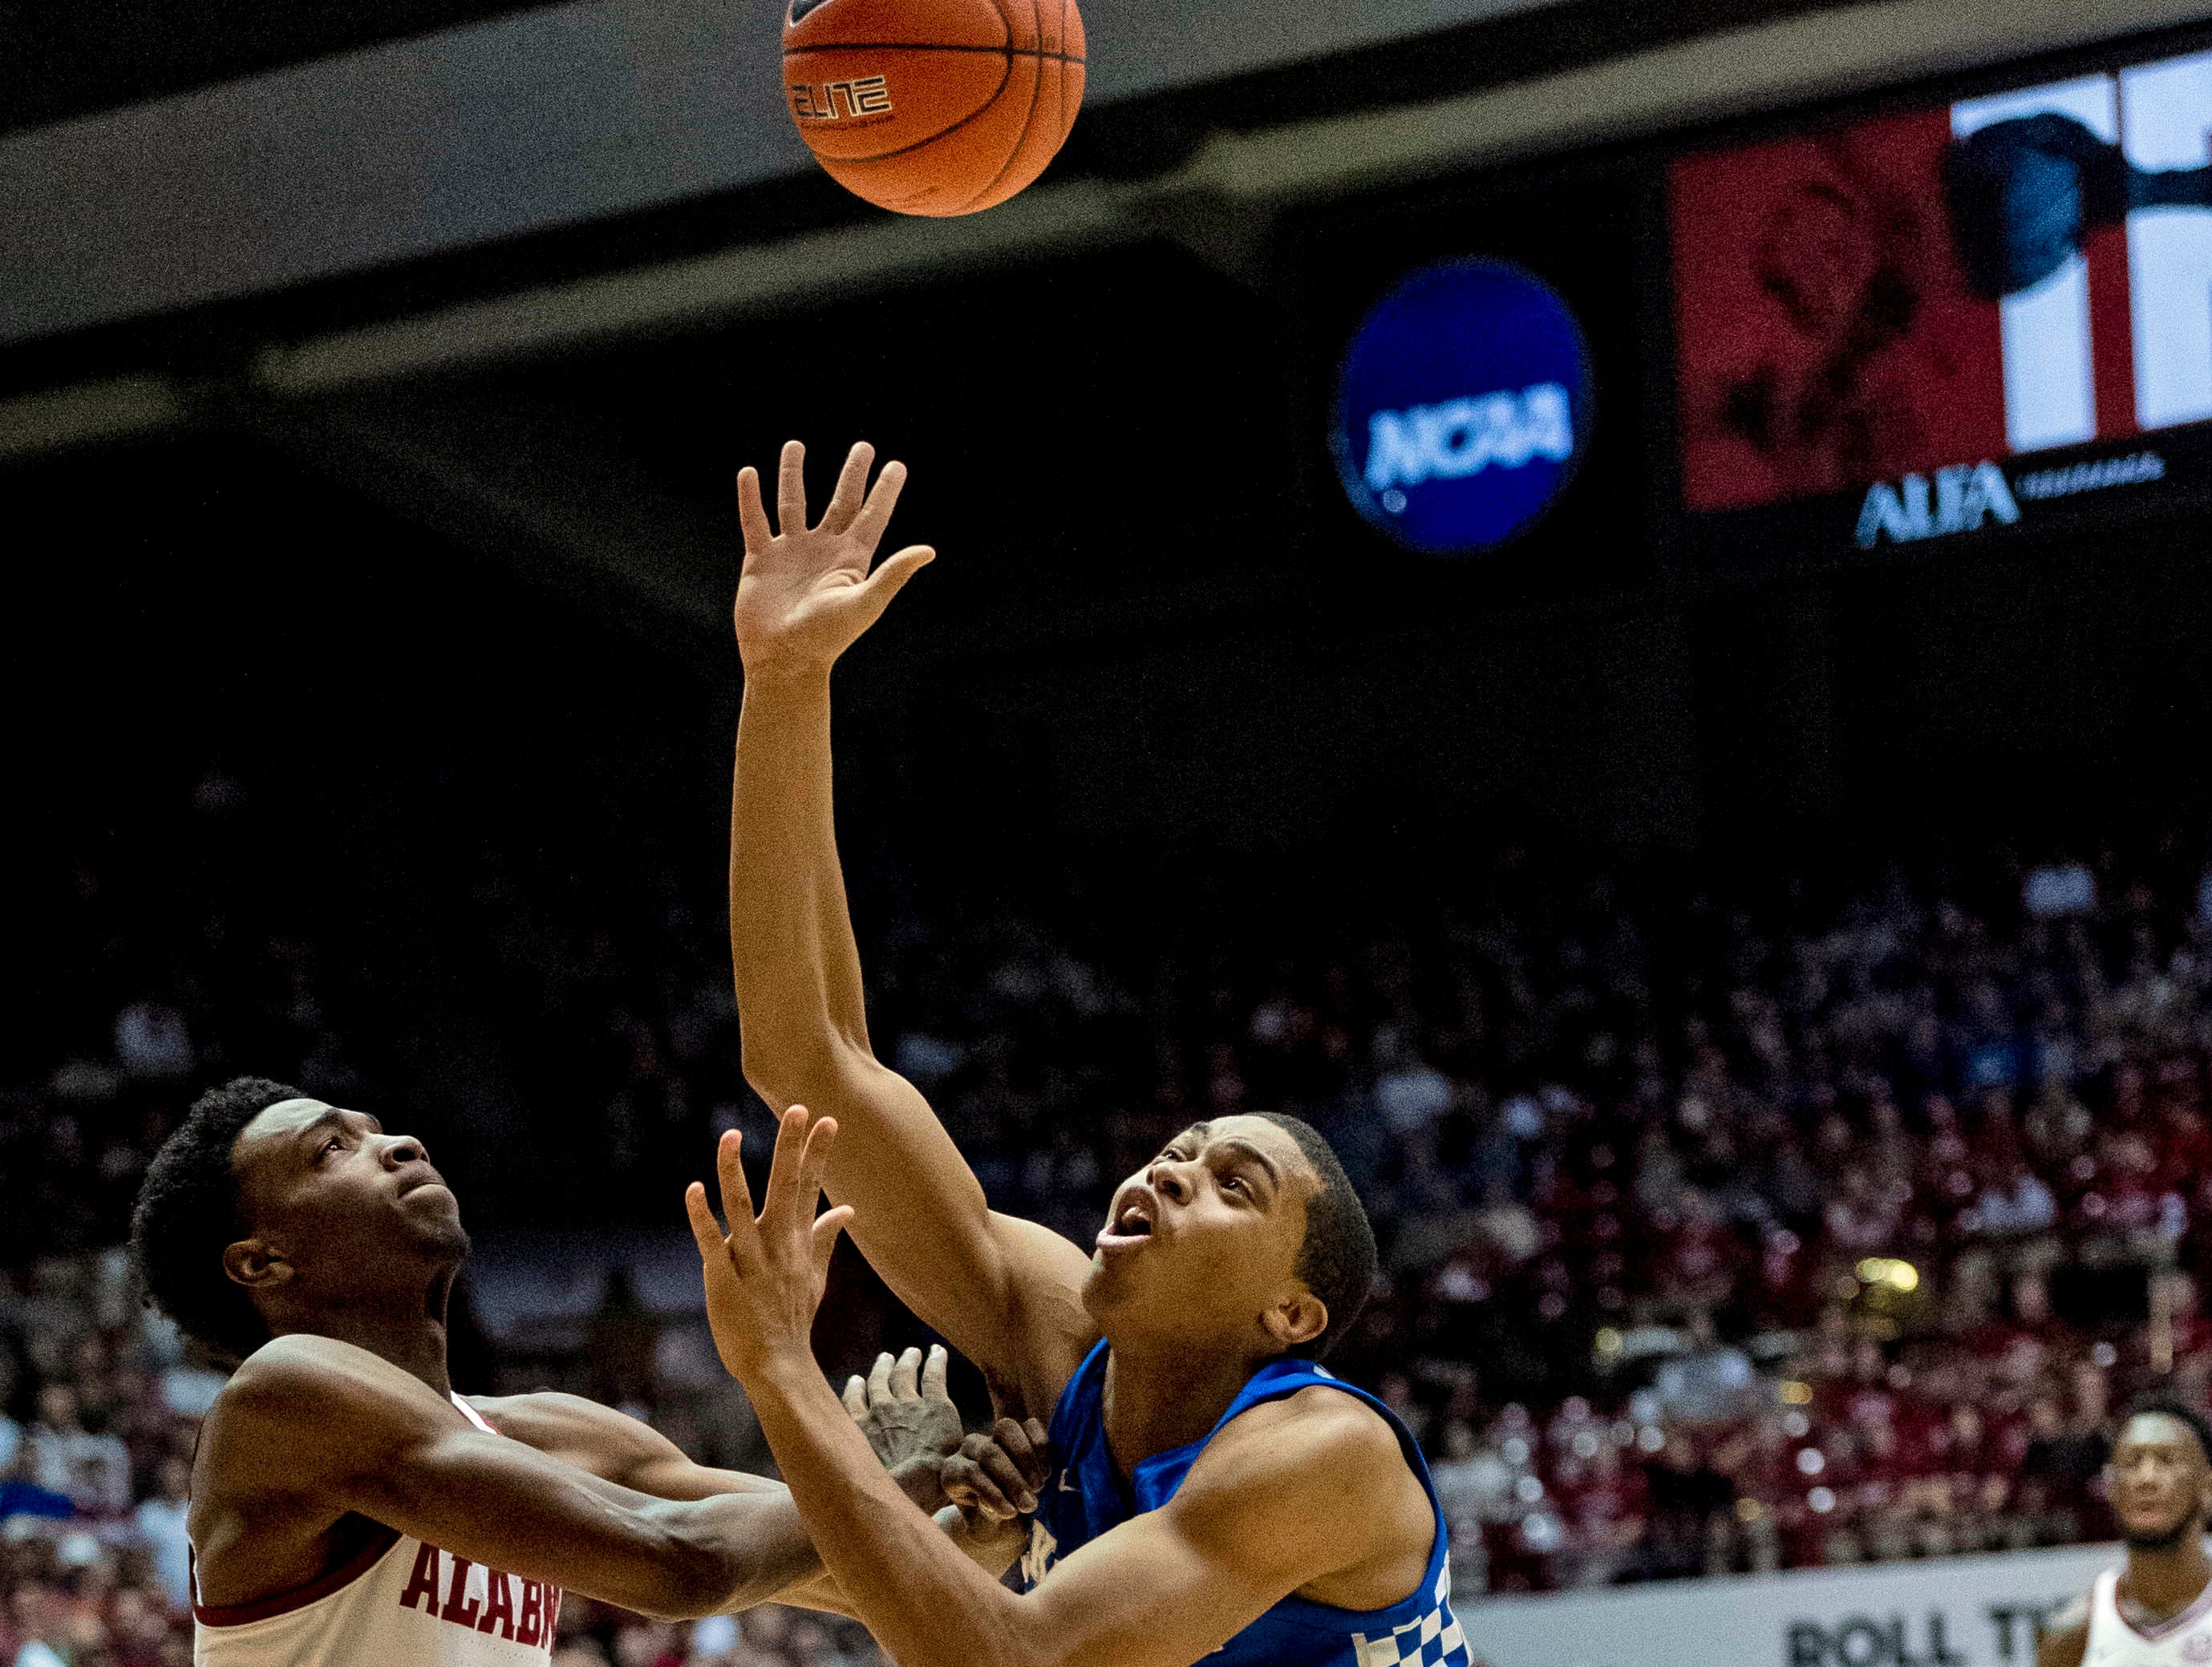 Kentucky guard Keldon Johnson (3) shoots past Alabama guard Herbert Jones (10) during the first half of an NCAA college basketball game, Saturday, Jan. 5, 2019.